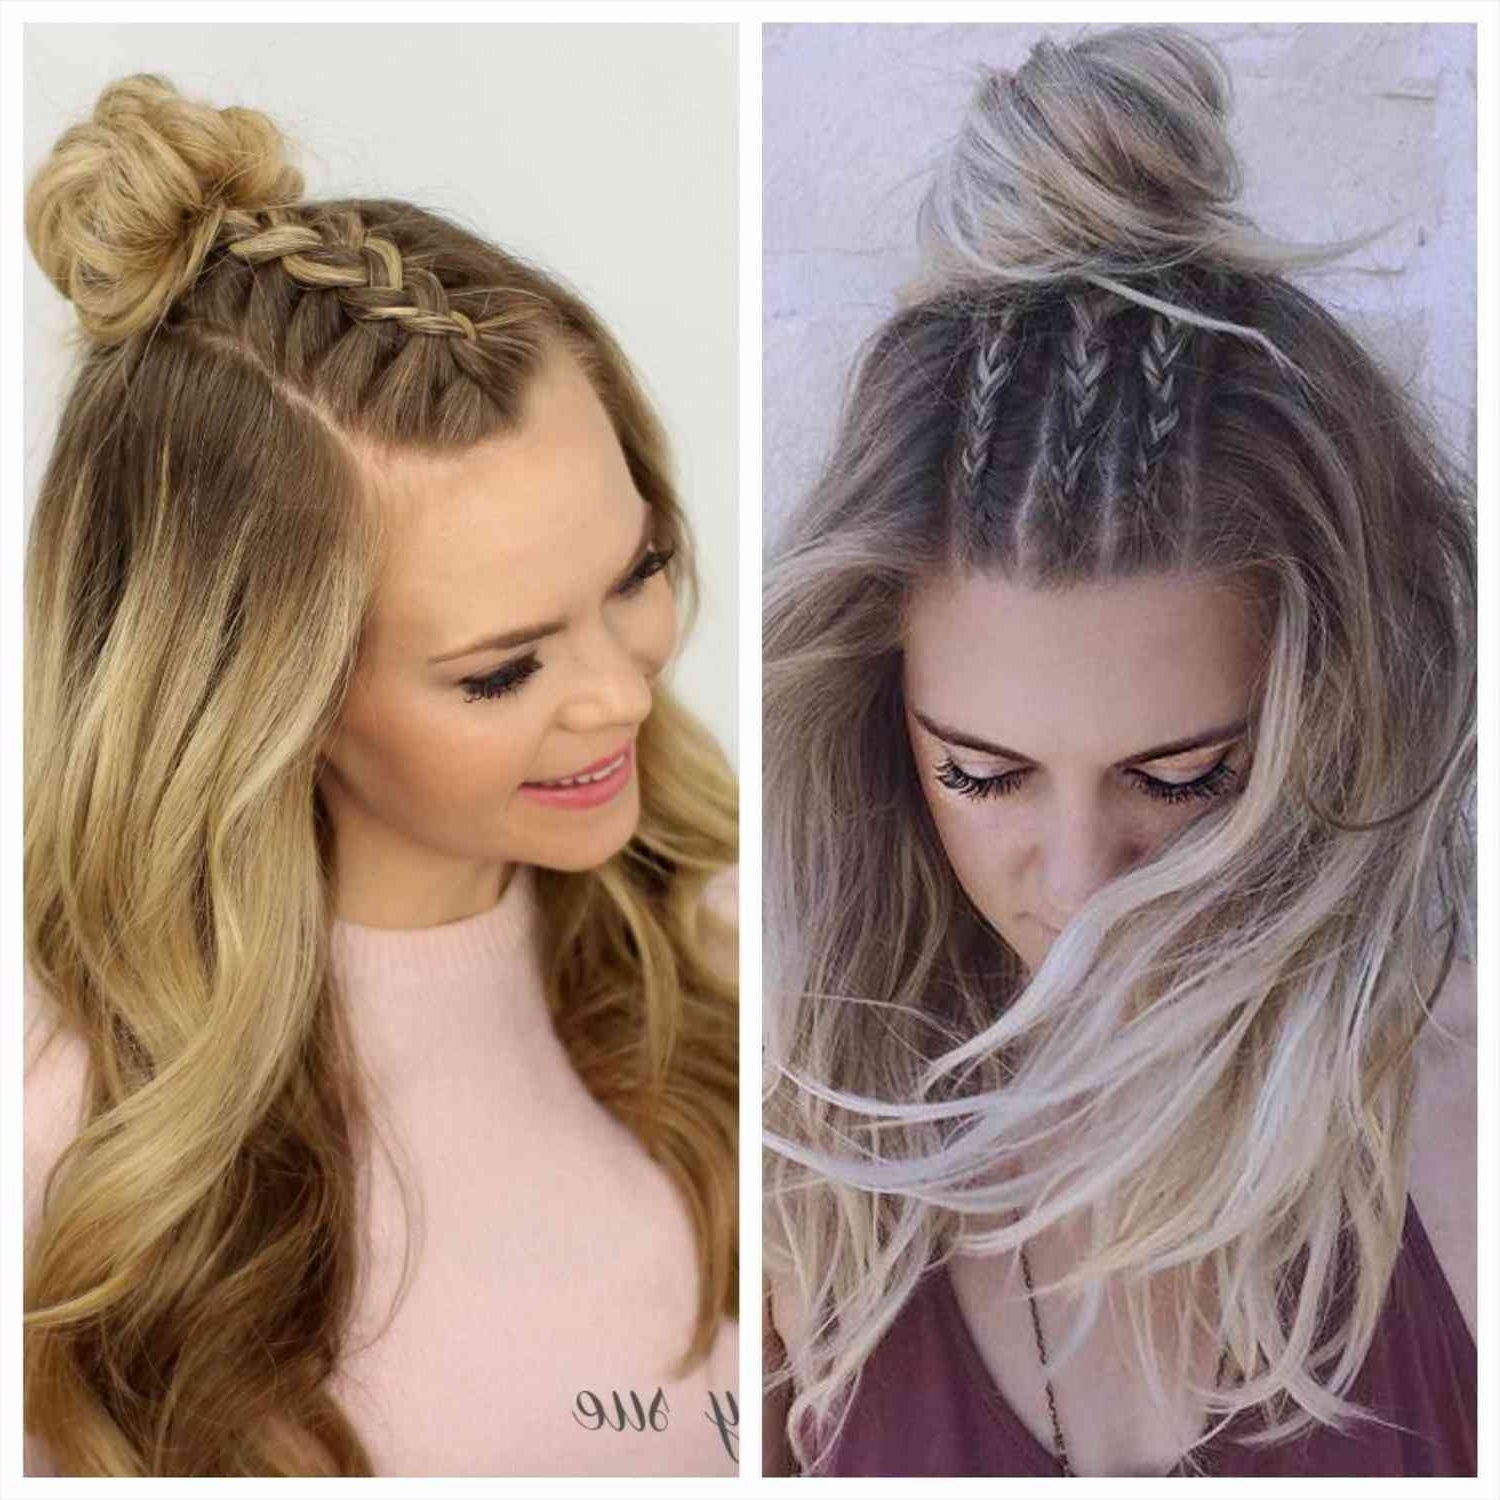 Trendy Braided Hairstyles For Summer In Braids Braided Hairstyles Cool Braid How Tous U Ideas Girls Milkmaid (View 11 of 15)